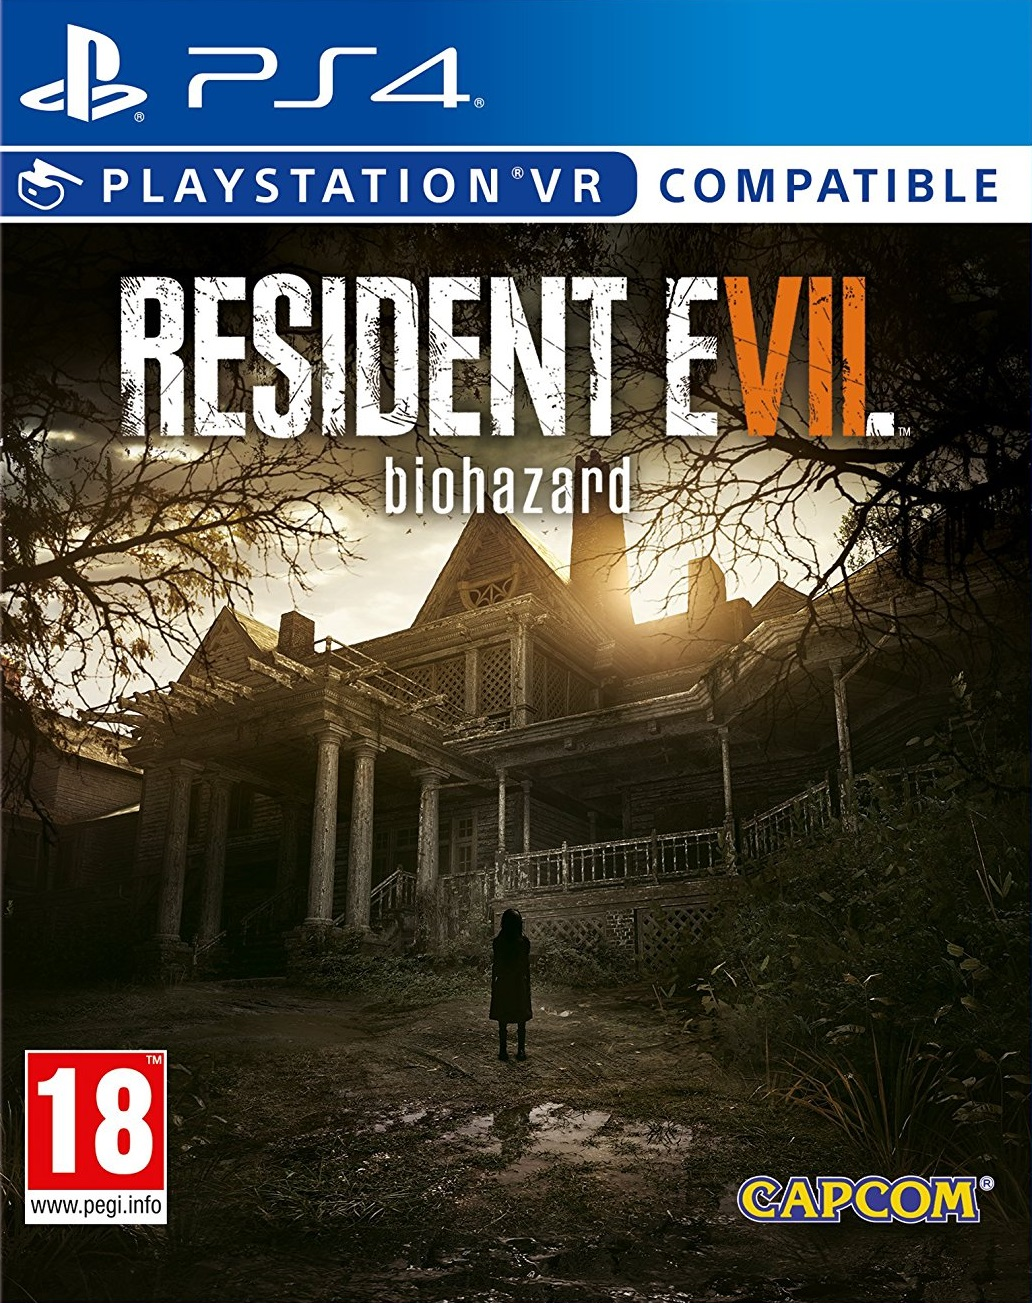 Resident Evil 7: Biohazard releases and takes the top